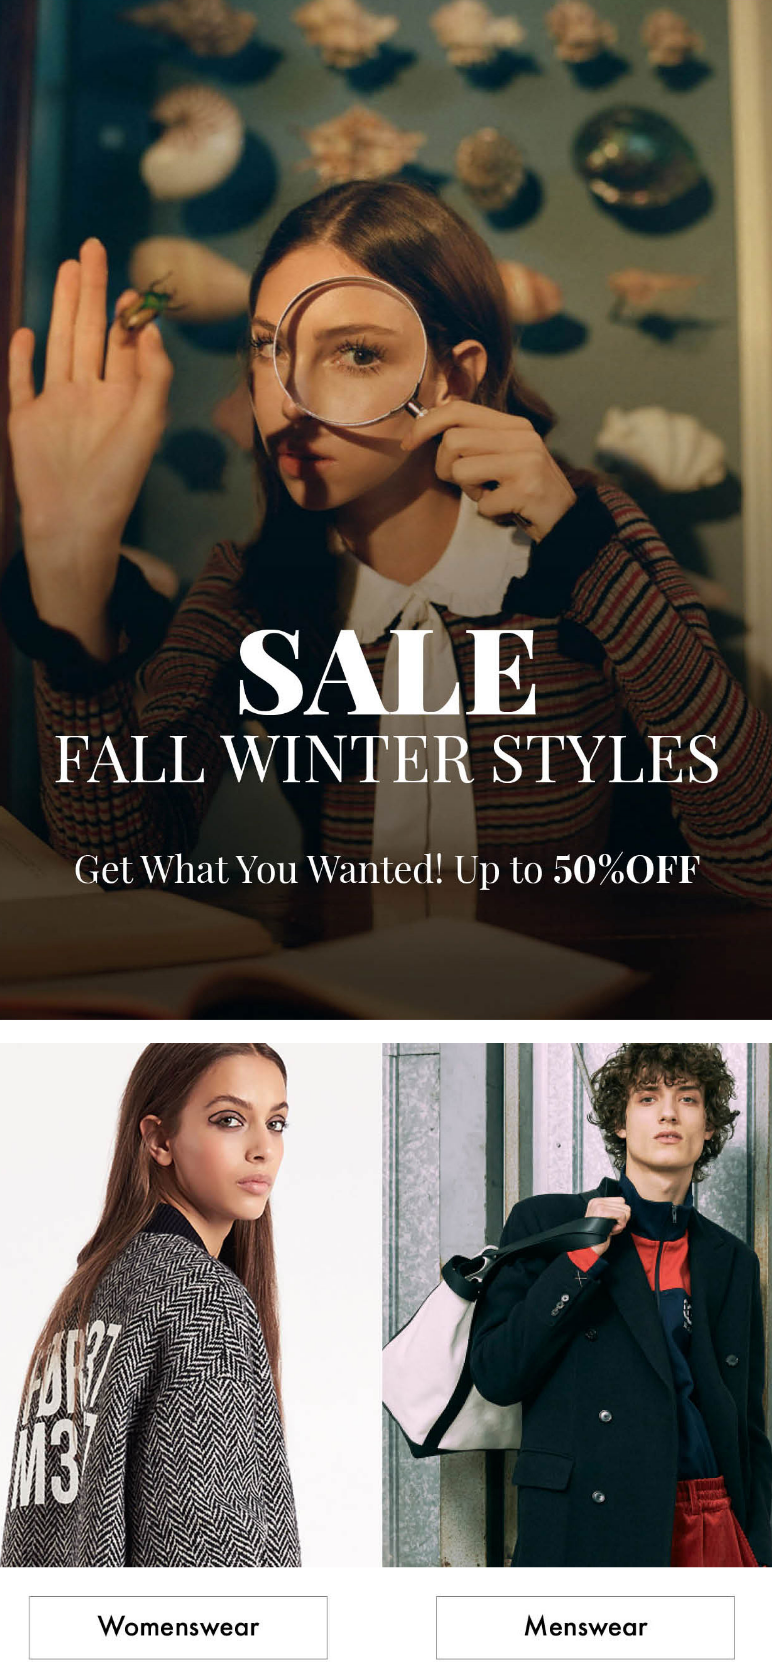 There's no better time for something new. But don't wait, sale items tend to sell out quickly. Shop ...